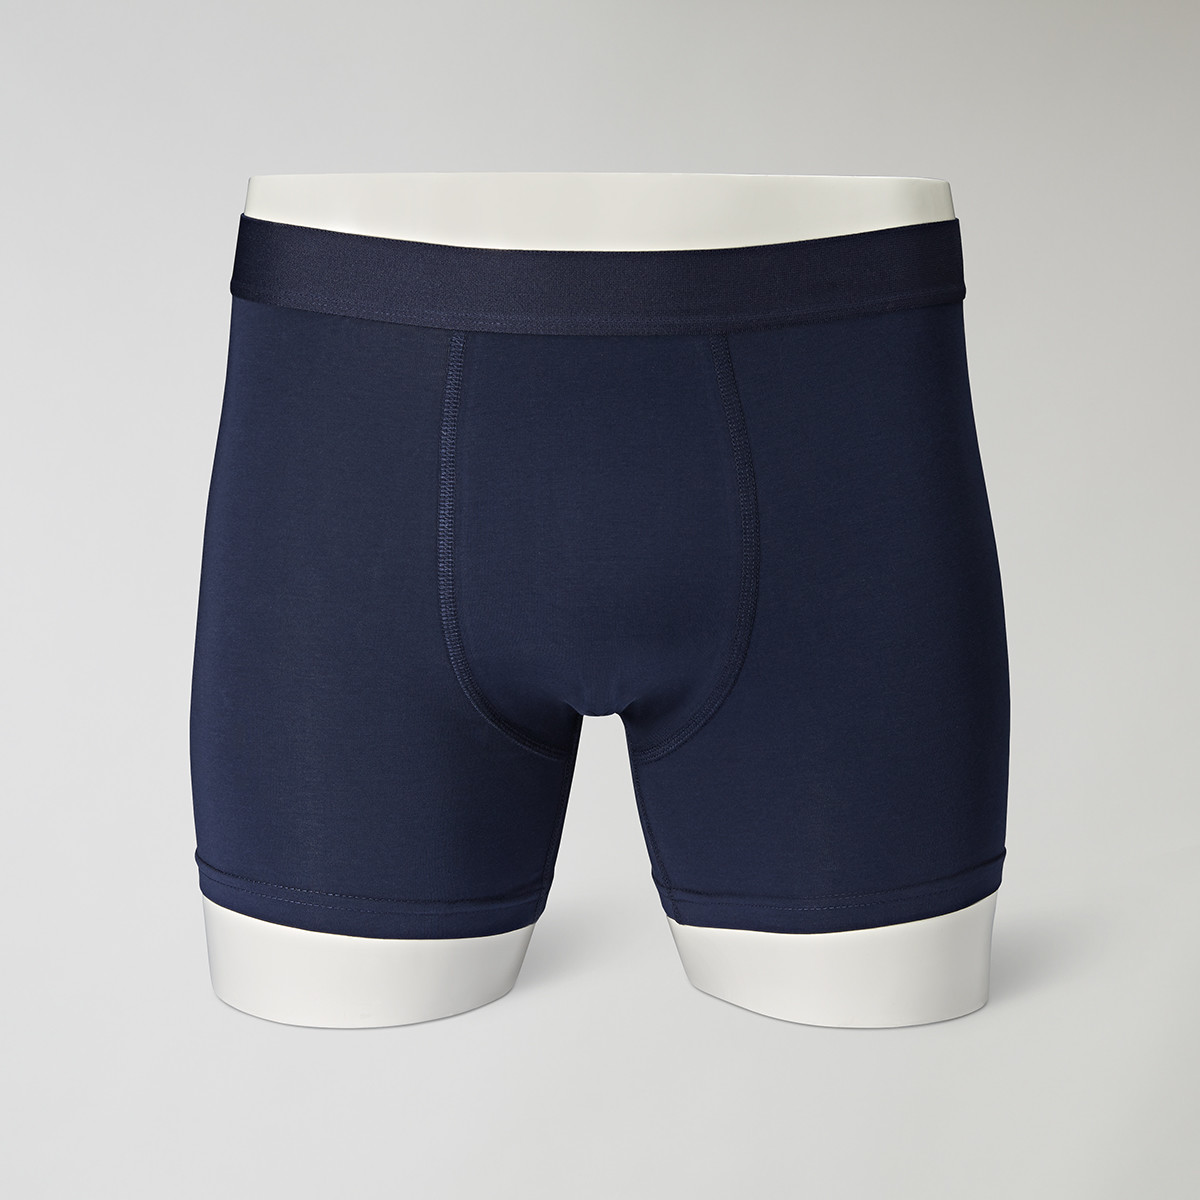 Mörkblå boxer-briefs | Riley | Brothers.se